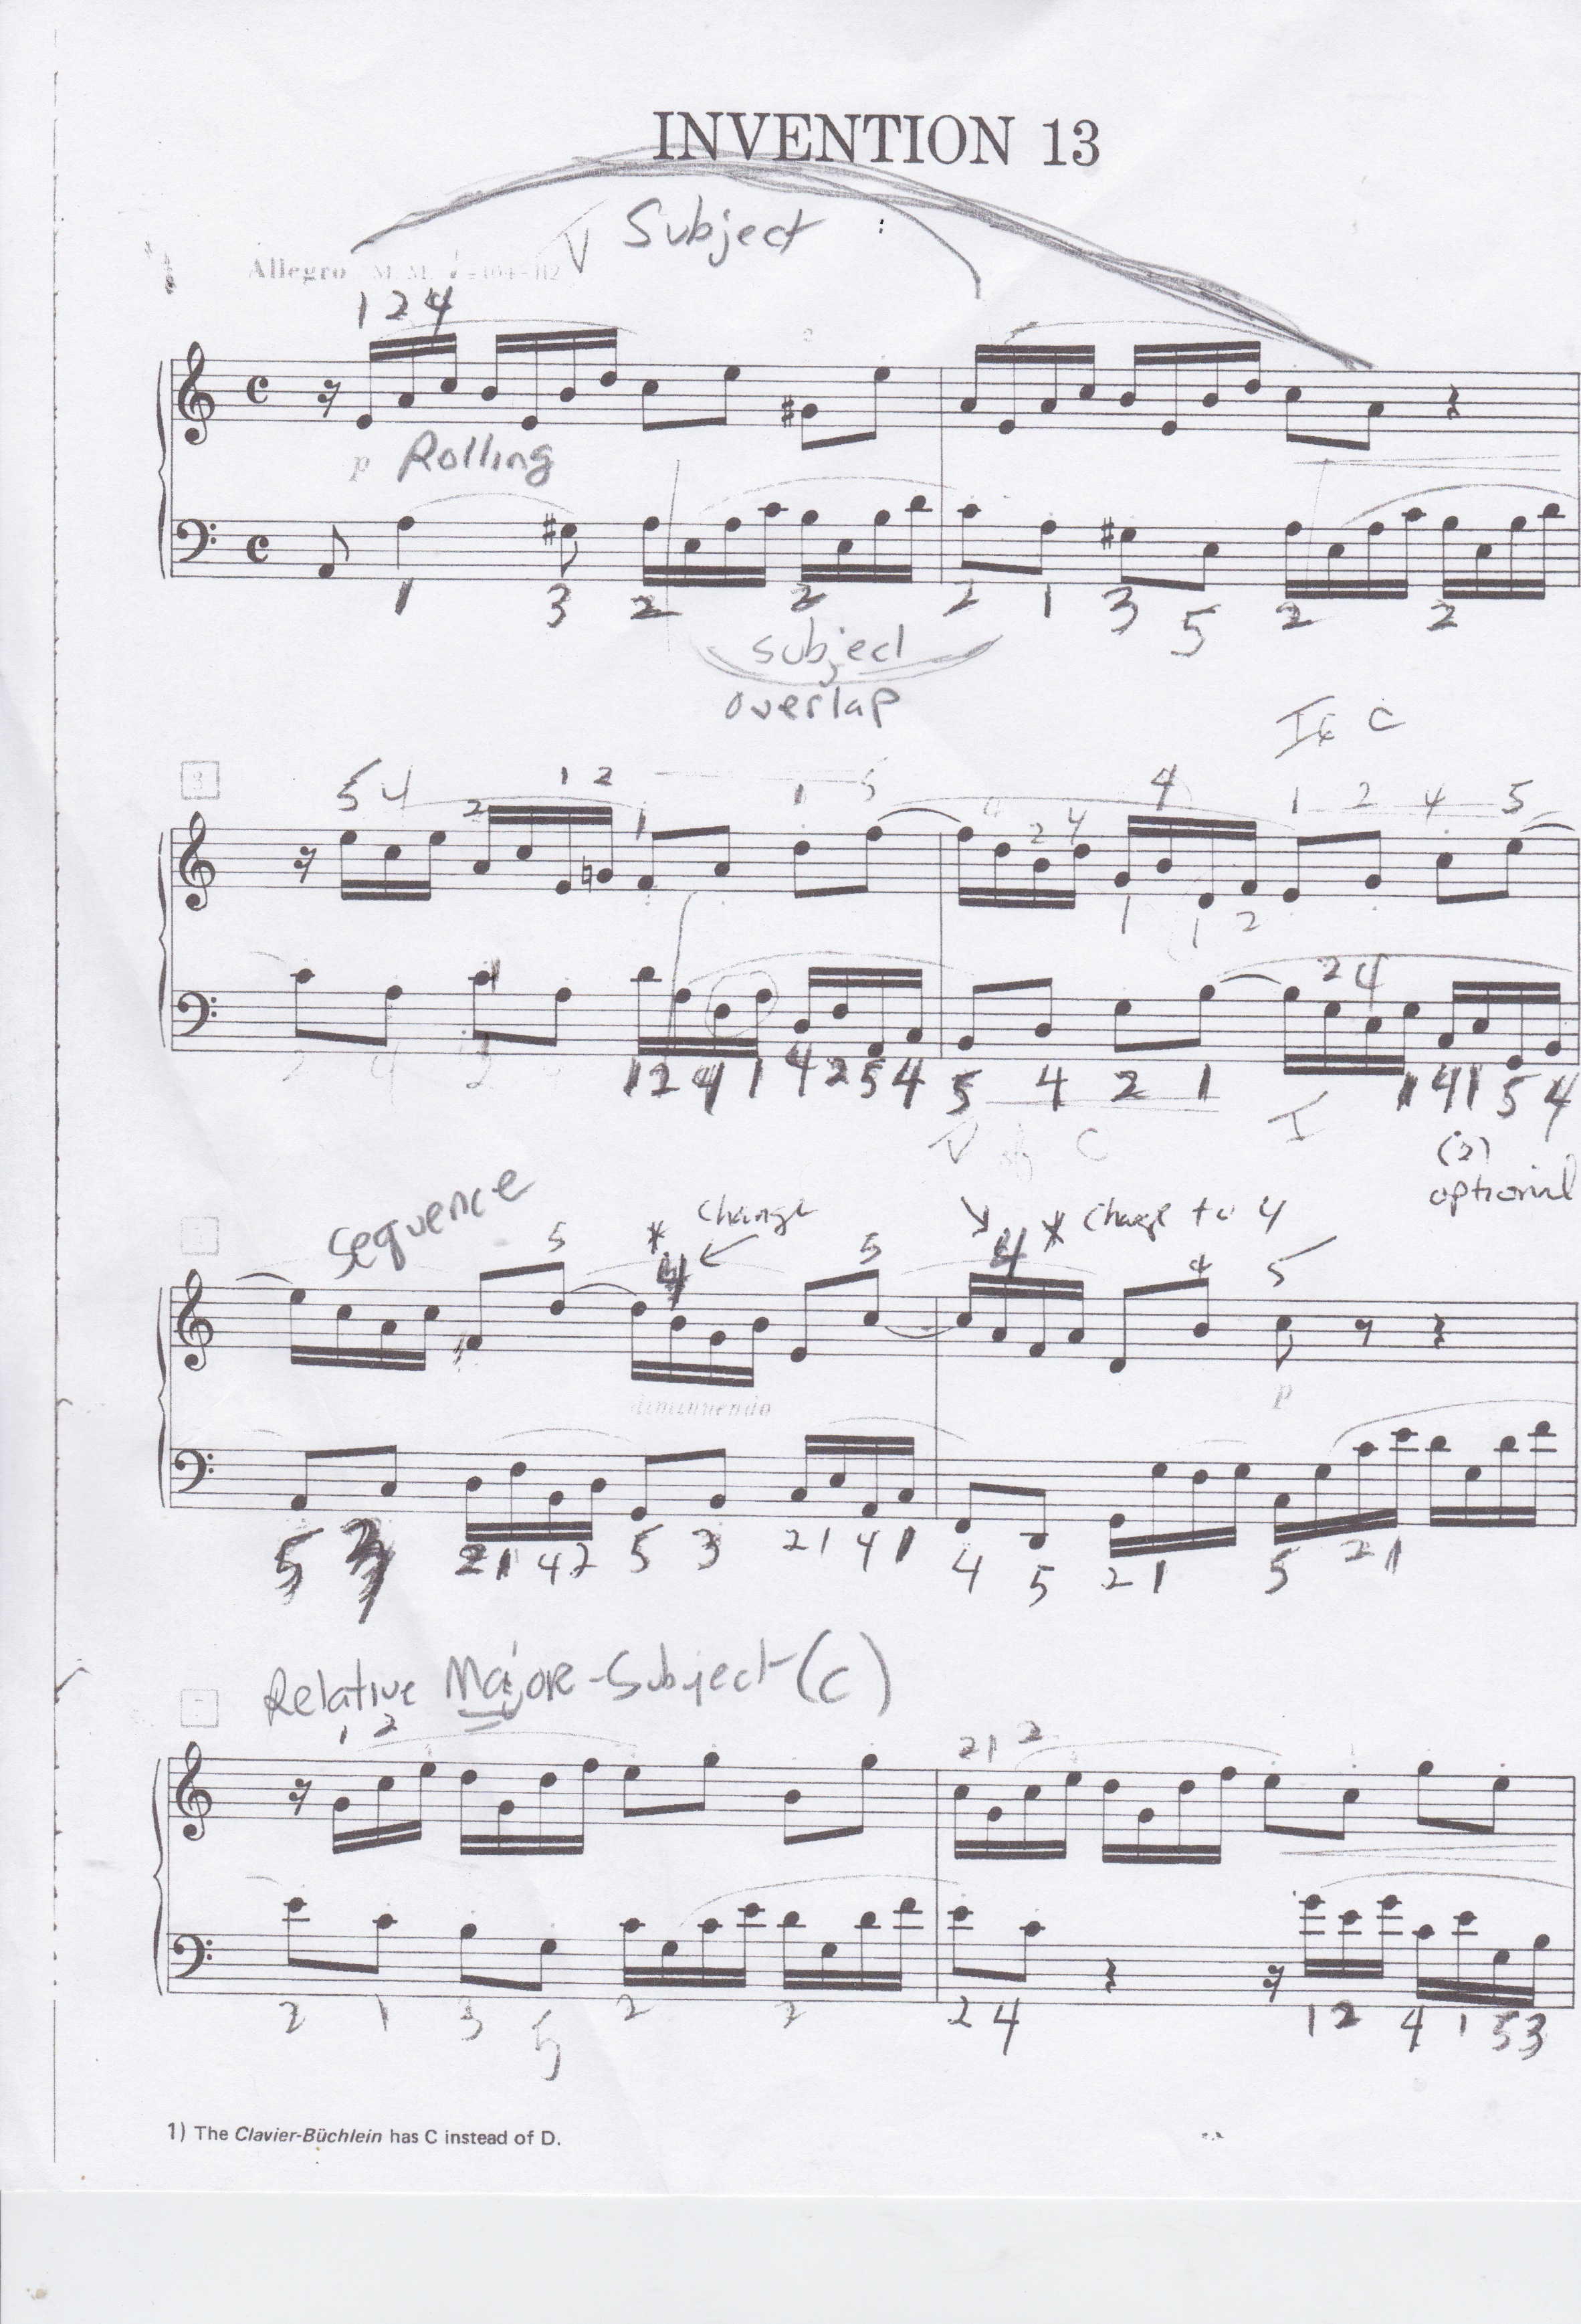 essays on j.s. bach An 15 pages essay on jsbach's french suite no6 in e major, with music analysis, explanation and historical background of the piece an 15 pages essay on.